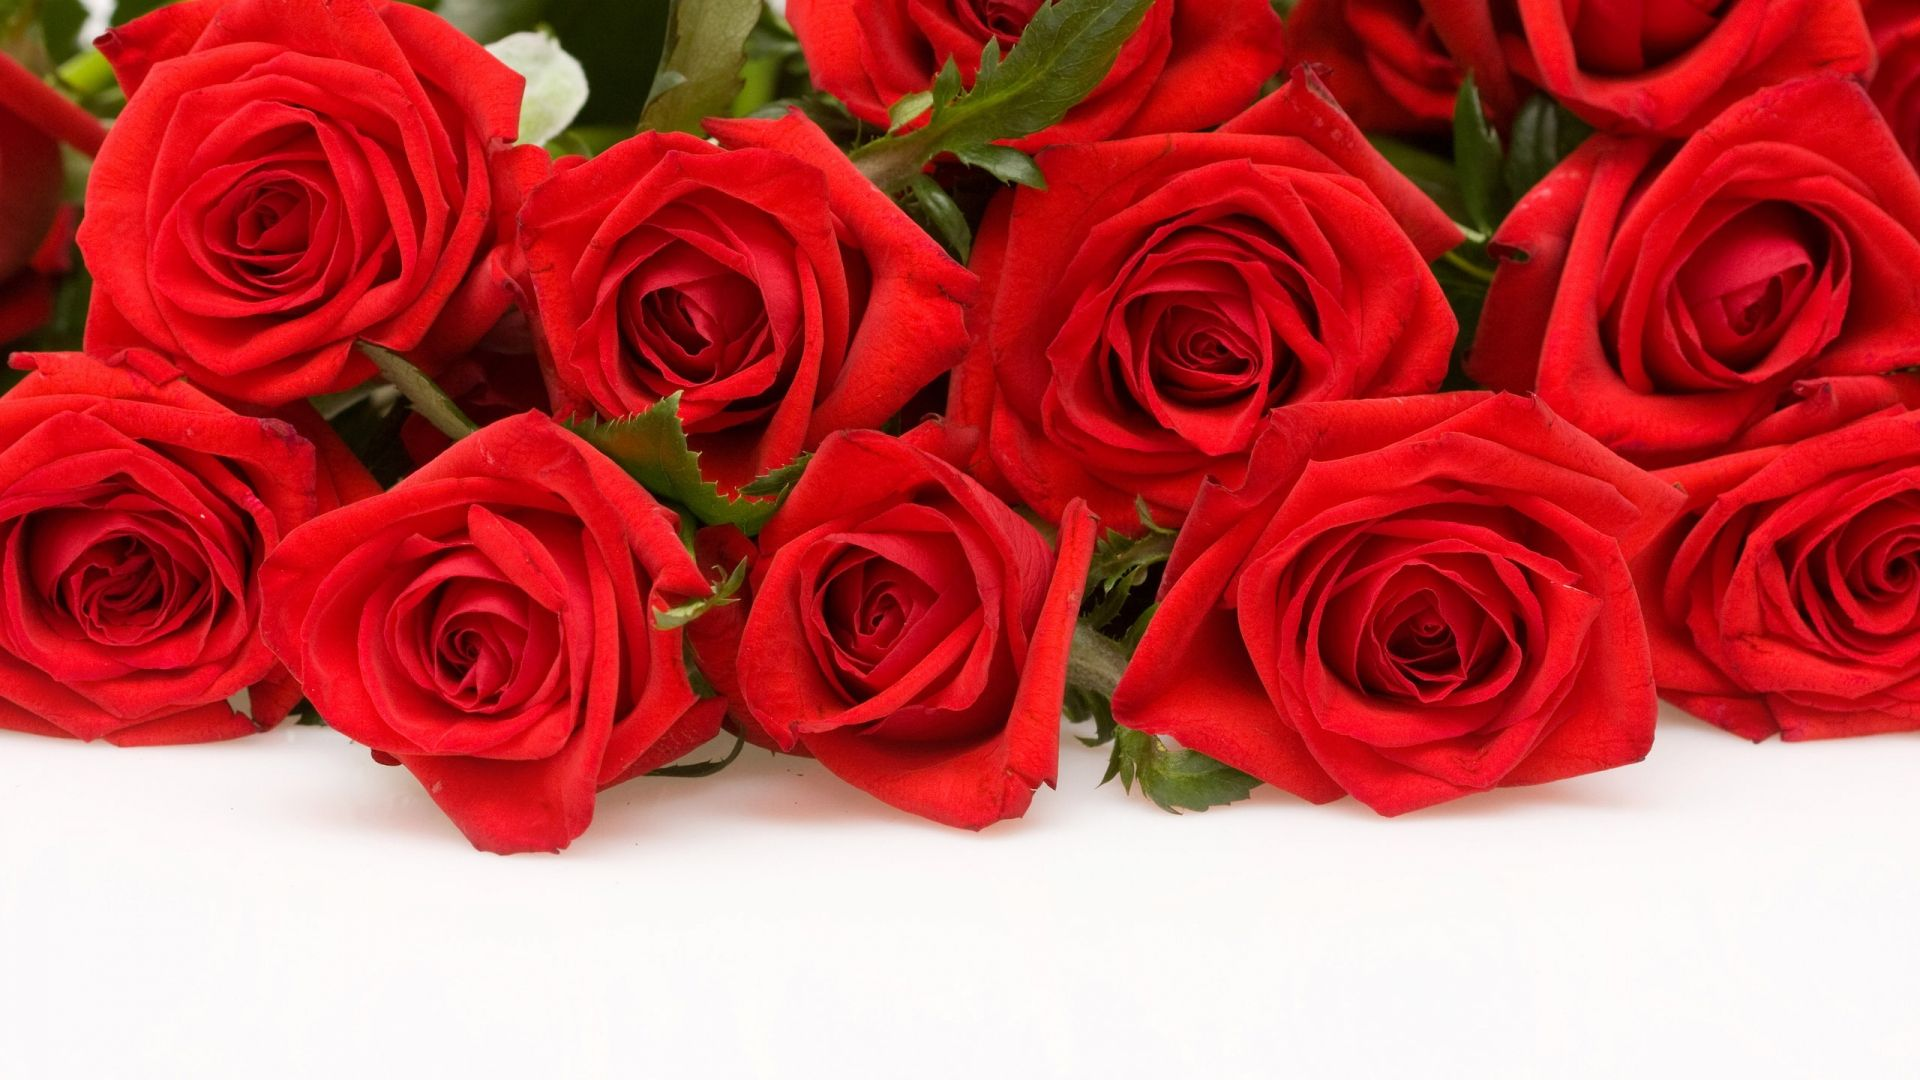 Red Roses Wallpaper Backgrounds | Red Roses HD Wallpaper, Flowers ...